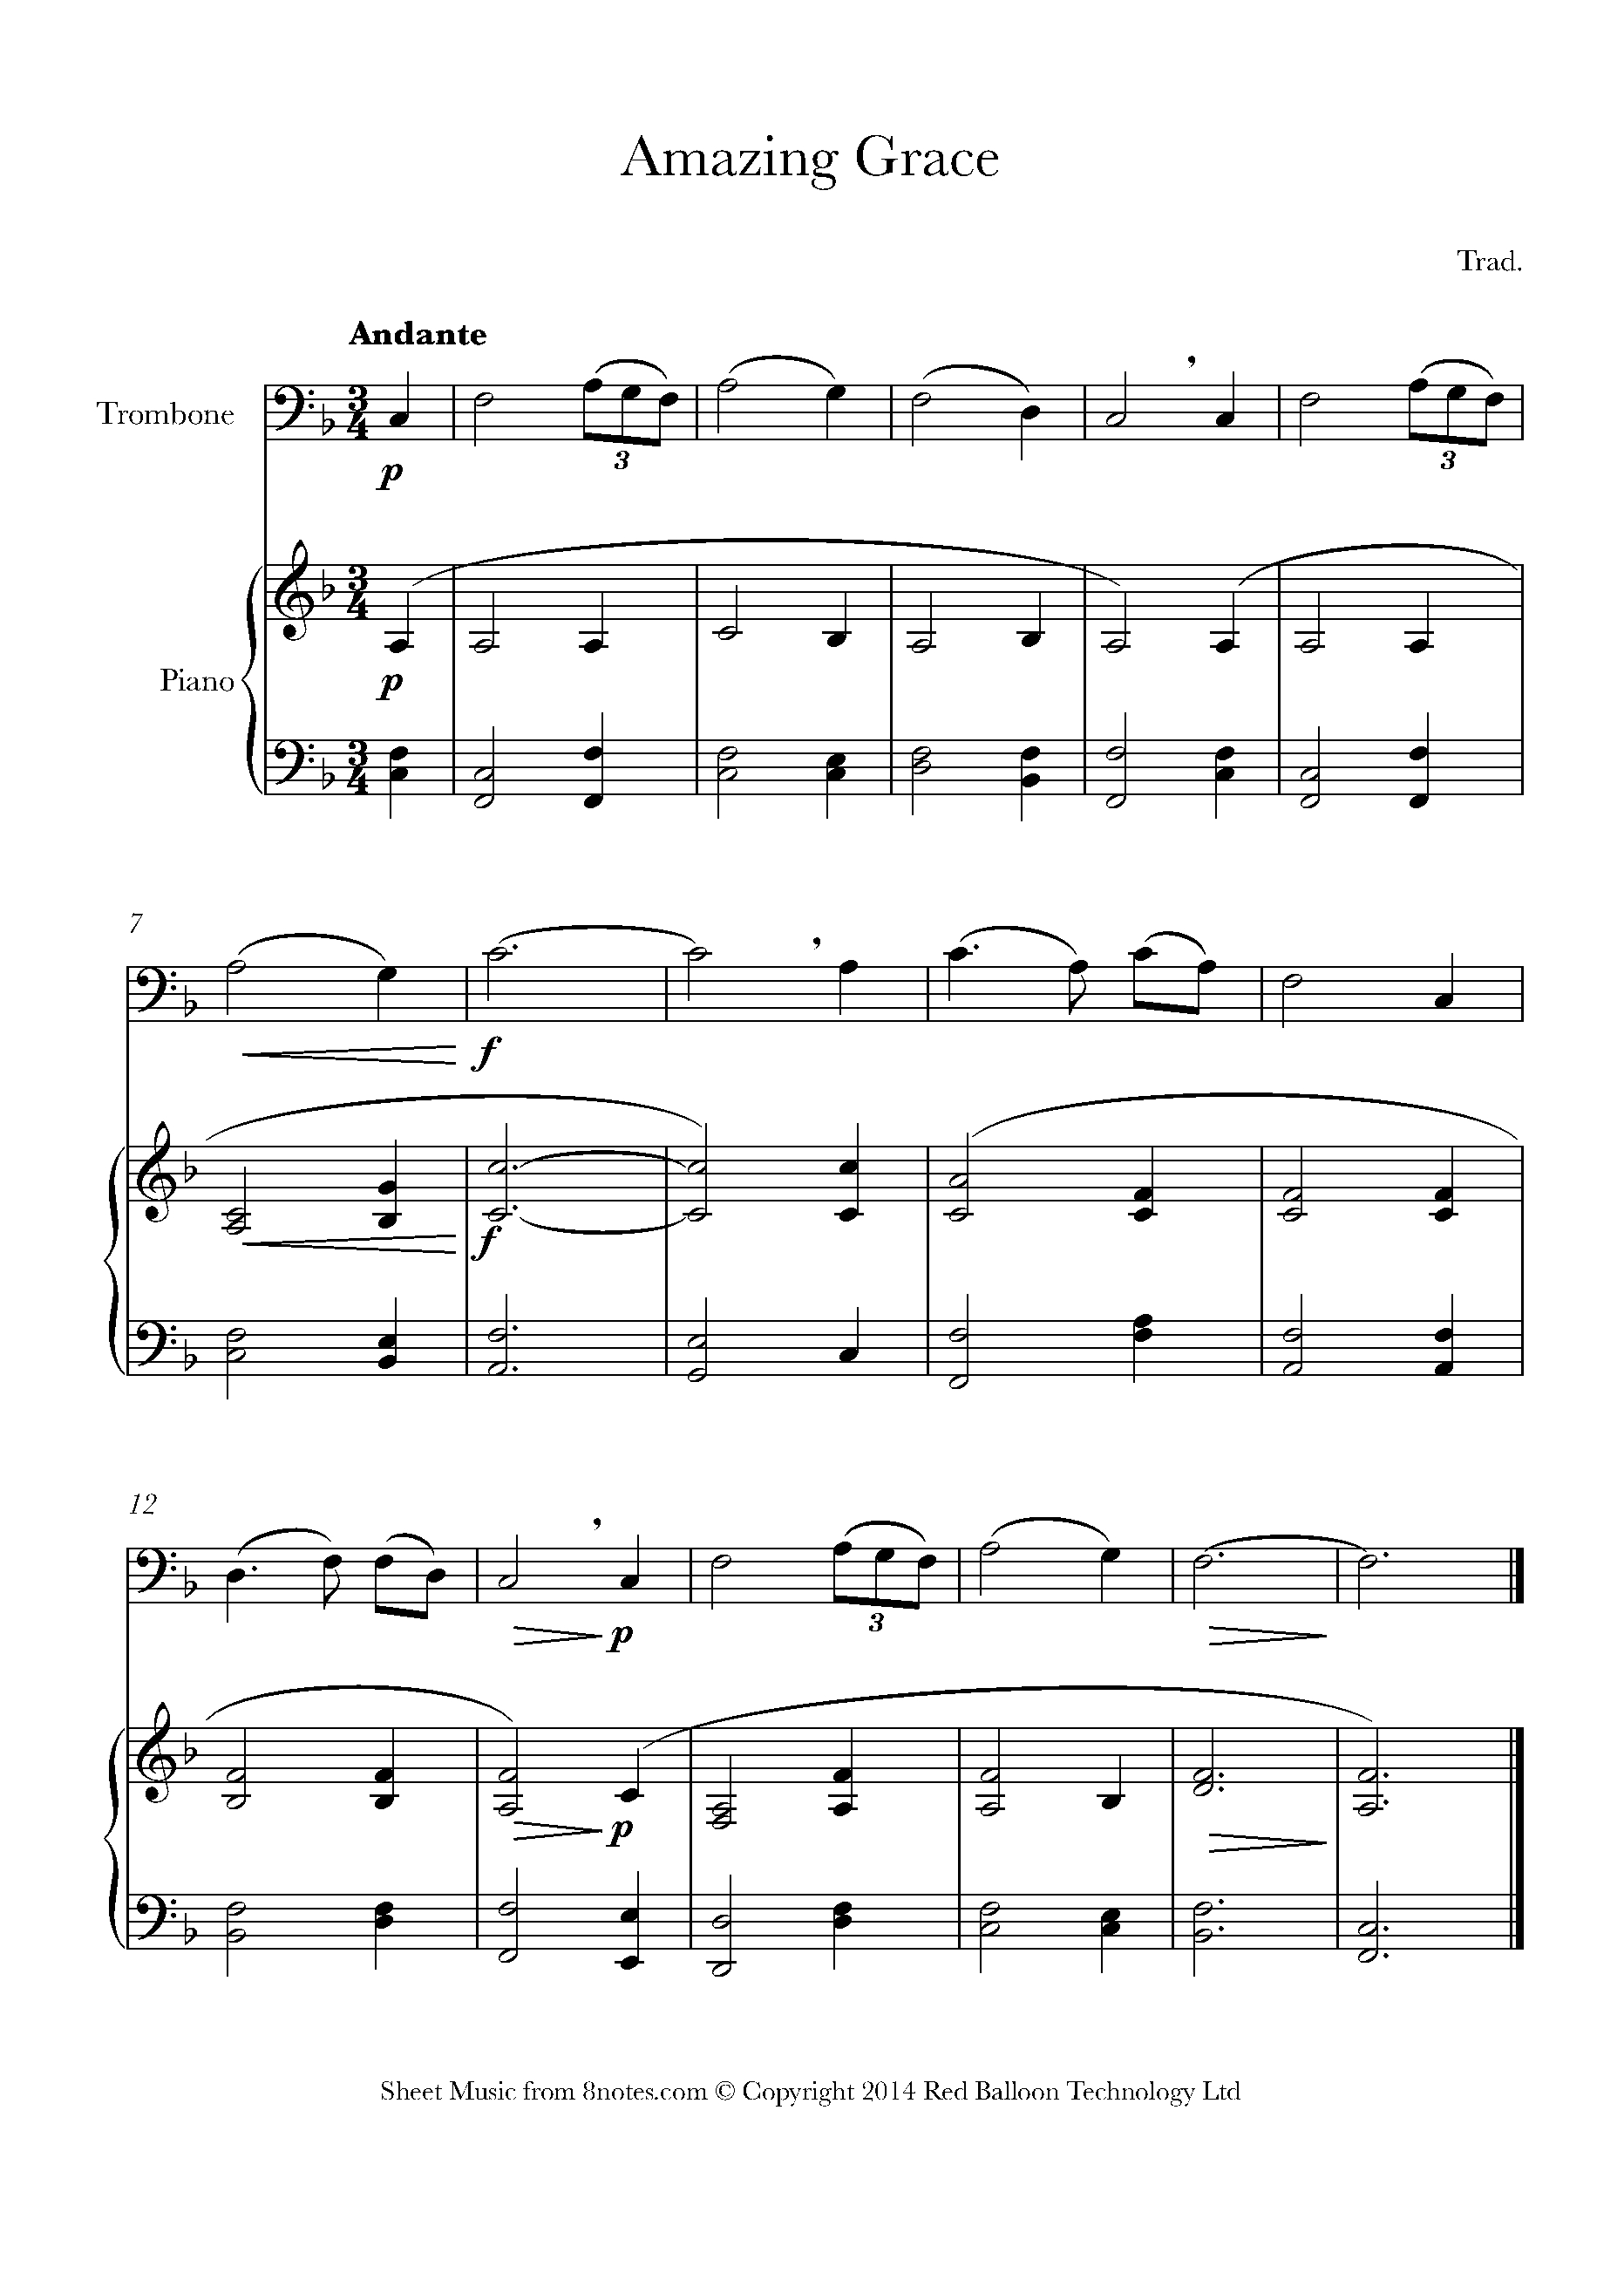 Amazing Grace Sheet Music For Trombone - 8Notes - Sheet Music For Trombone Free Printable